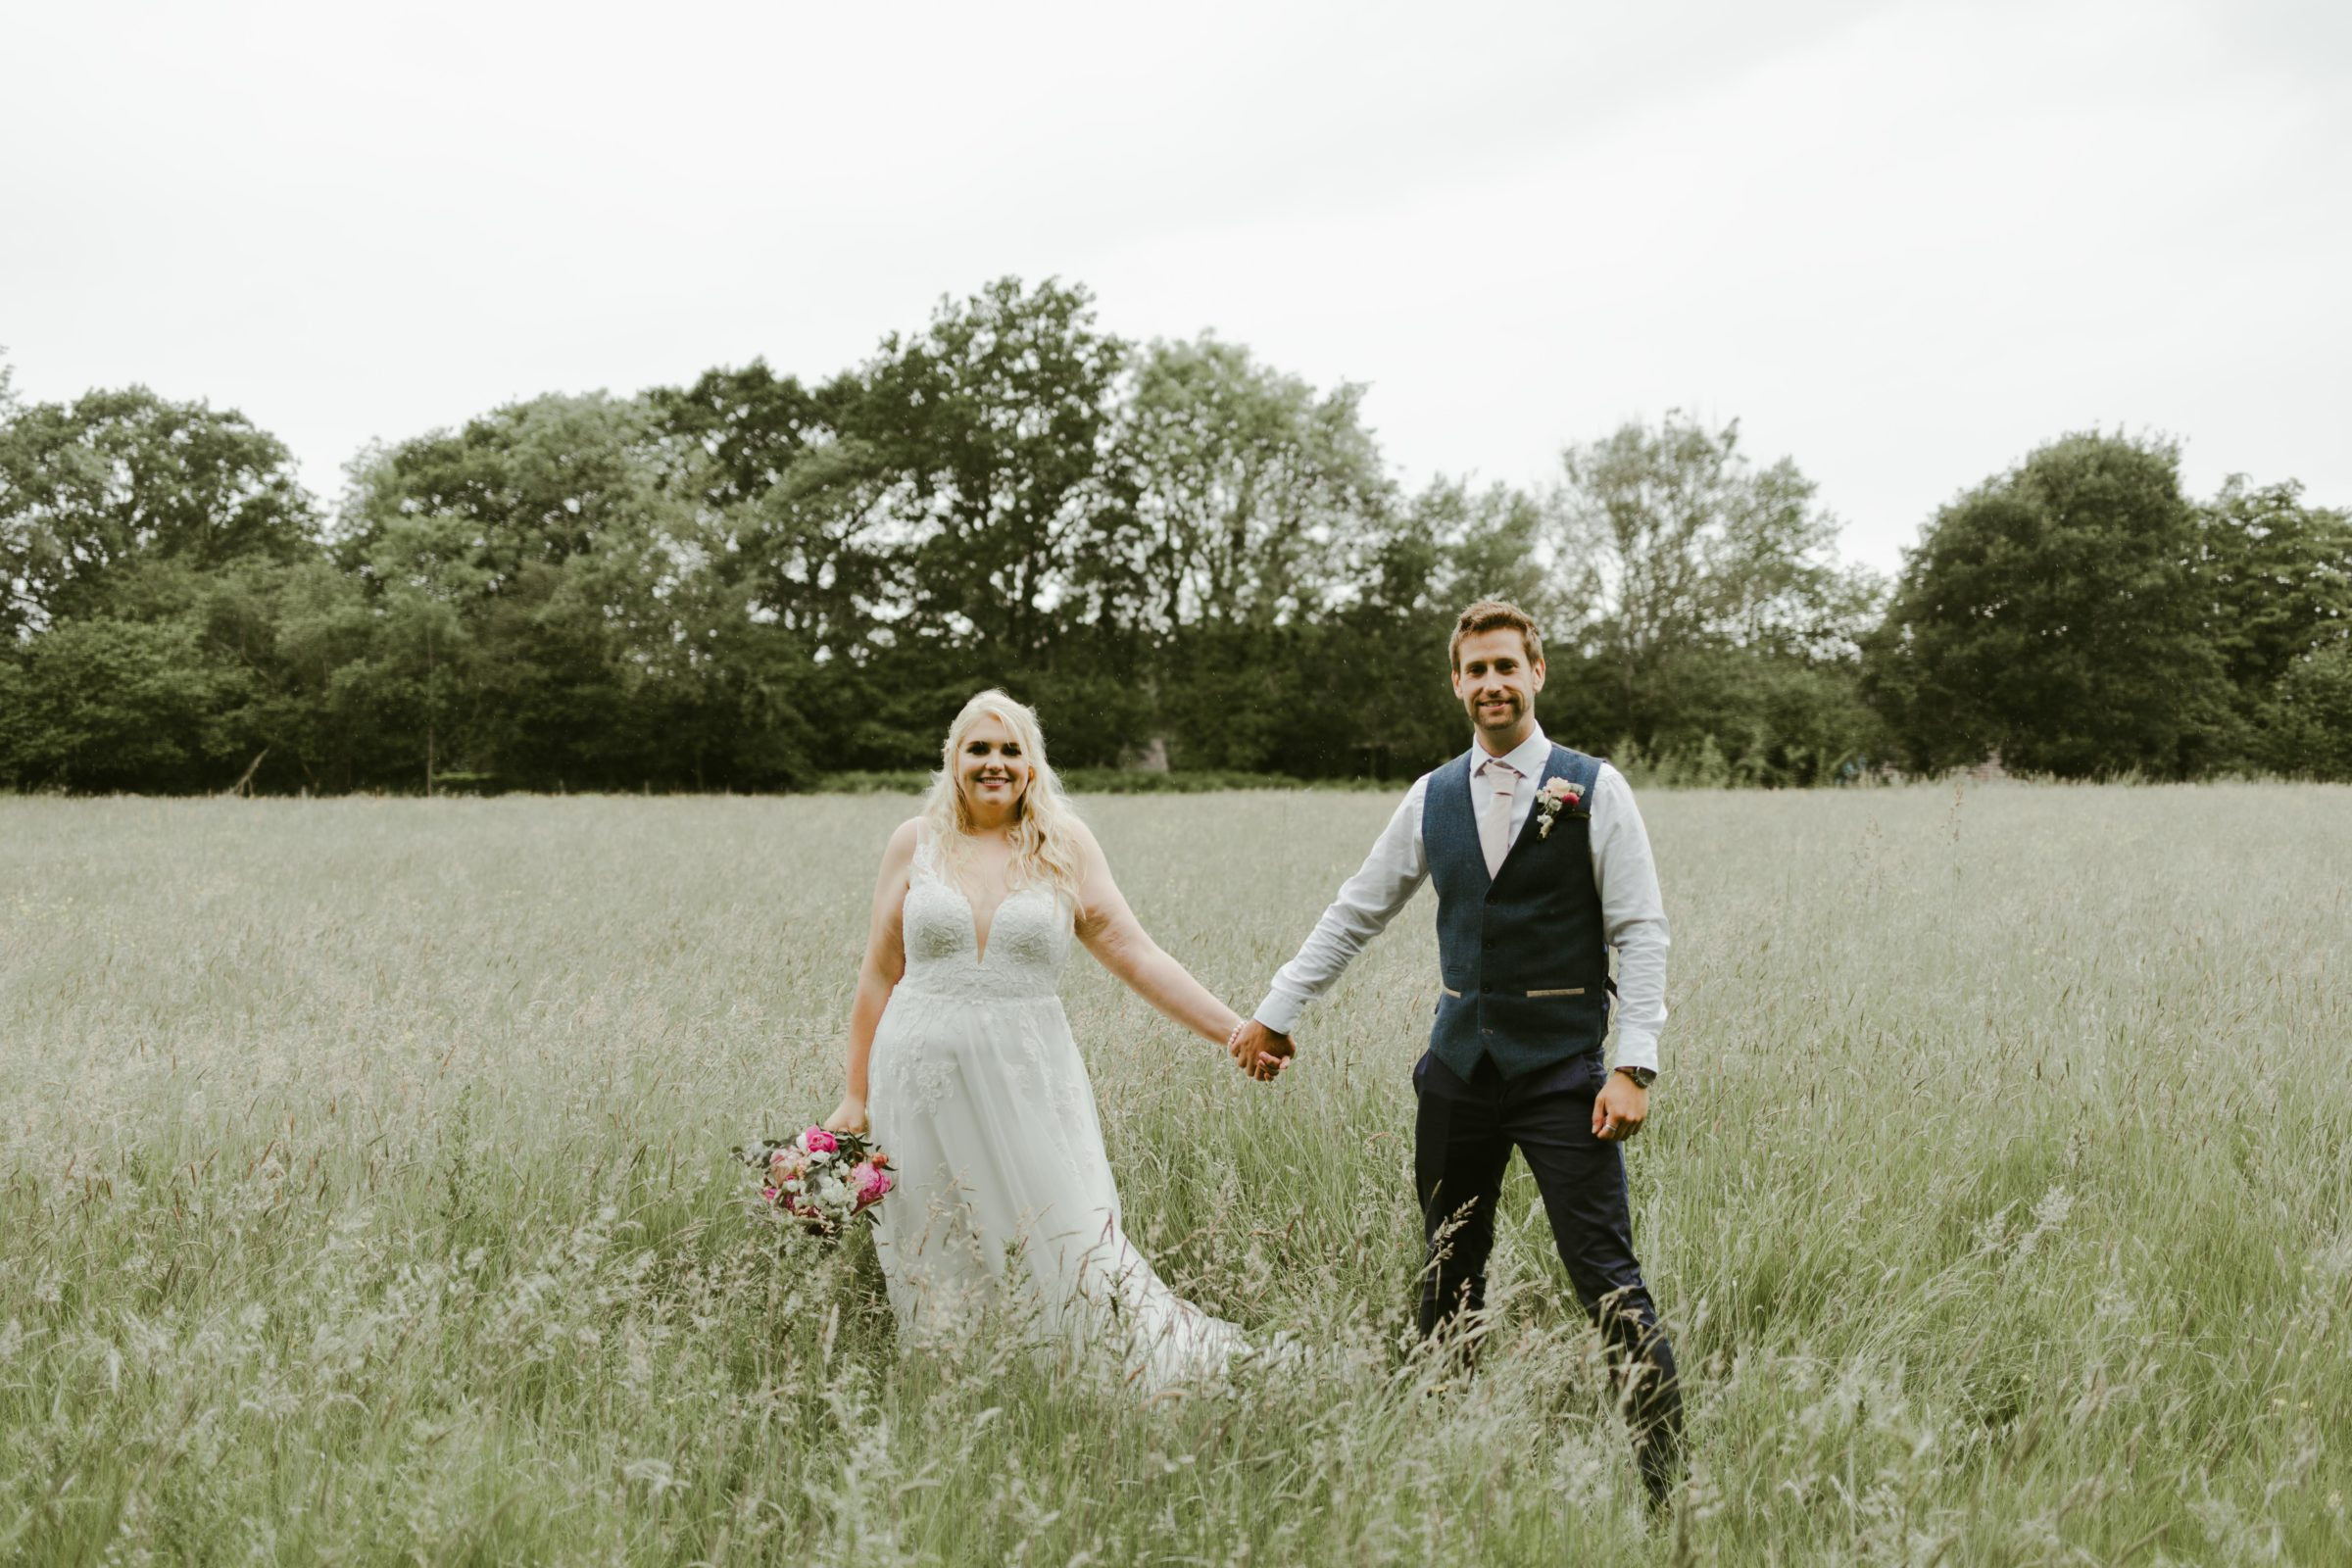 Steph & Ollie – Back Garden DIY Wedding – June 2019